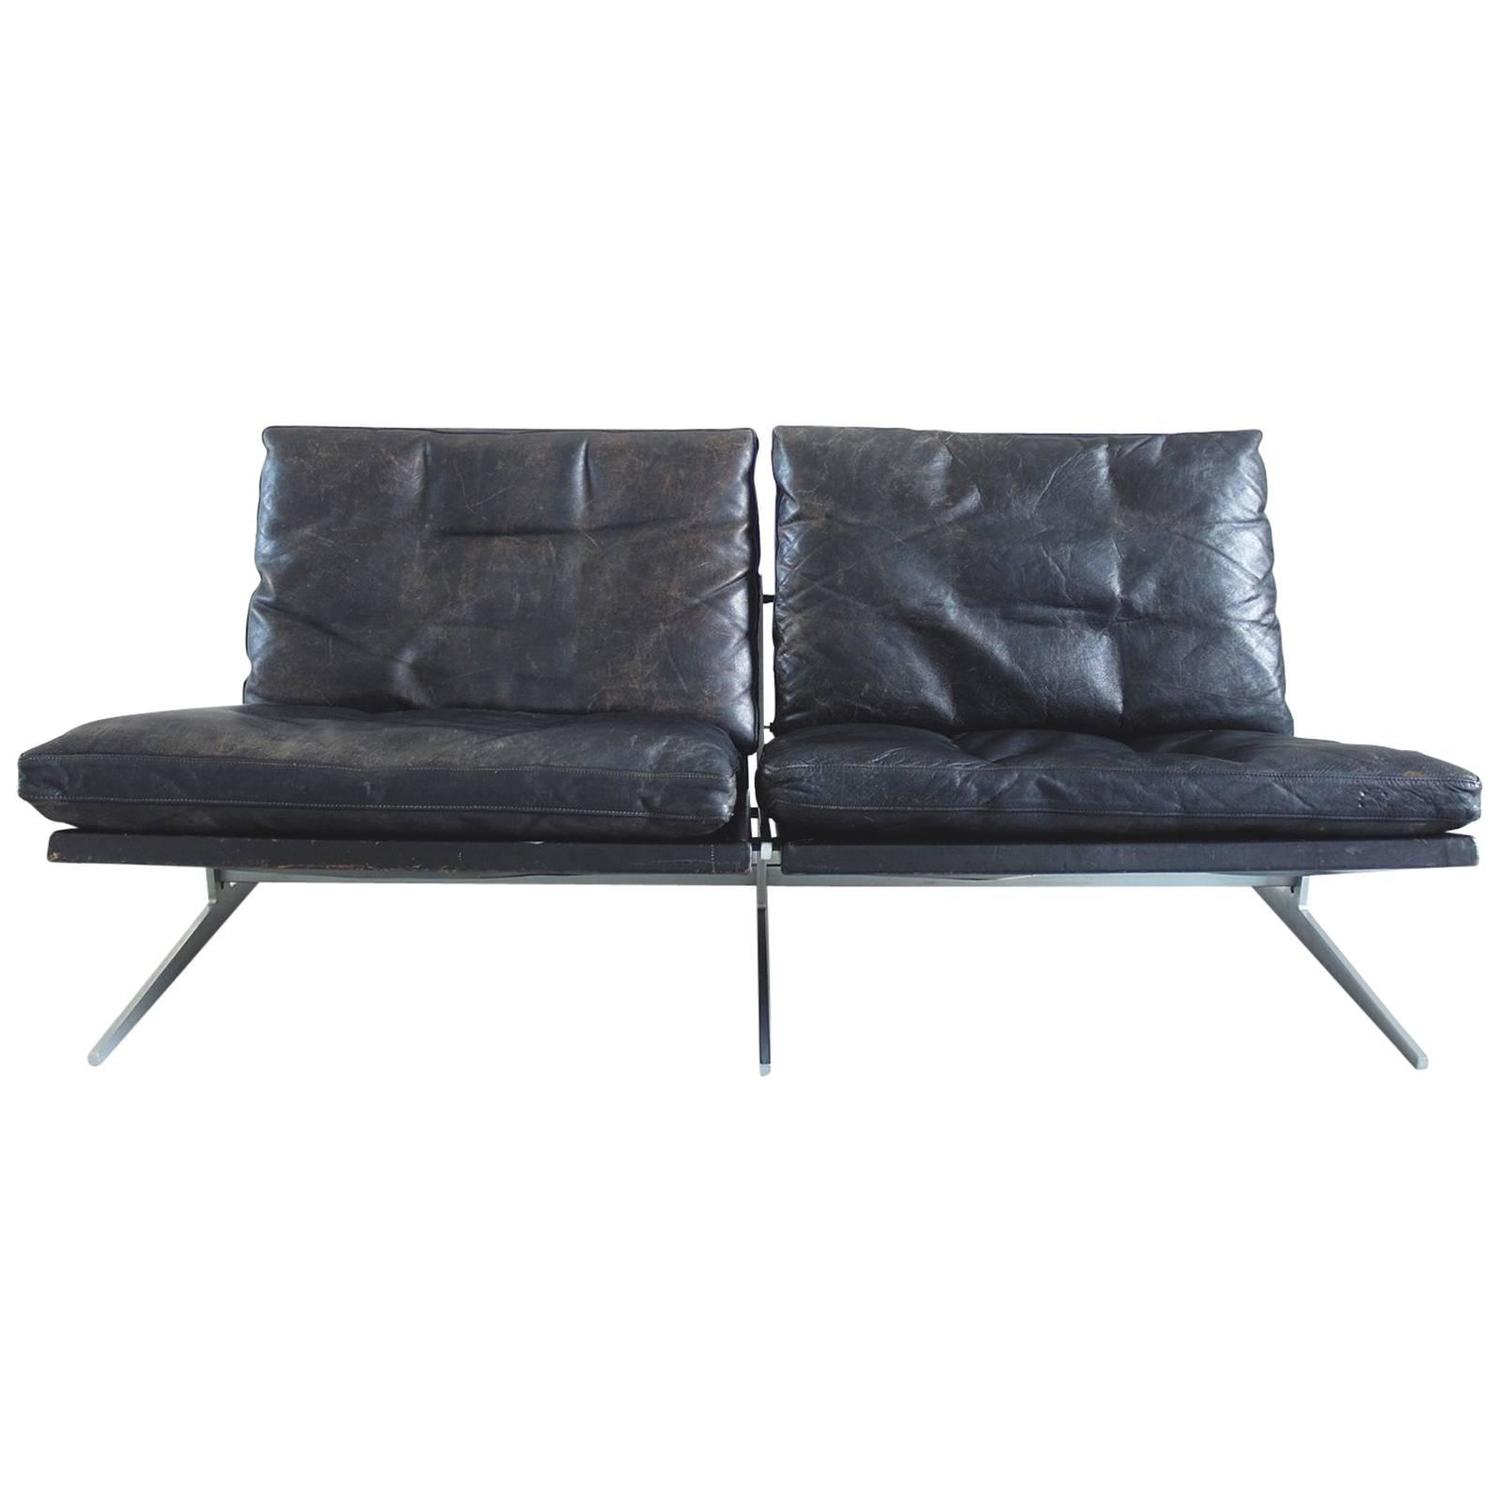 Maralunga two seat sofa by vico magistretti in black leather for fabricius and kastholm black leather two seat sofa for bo ex denmark 1962 parisarafo Image collections